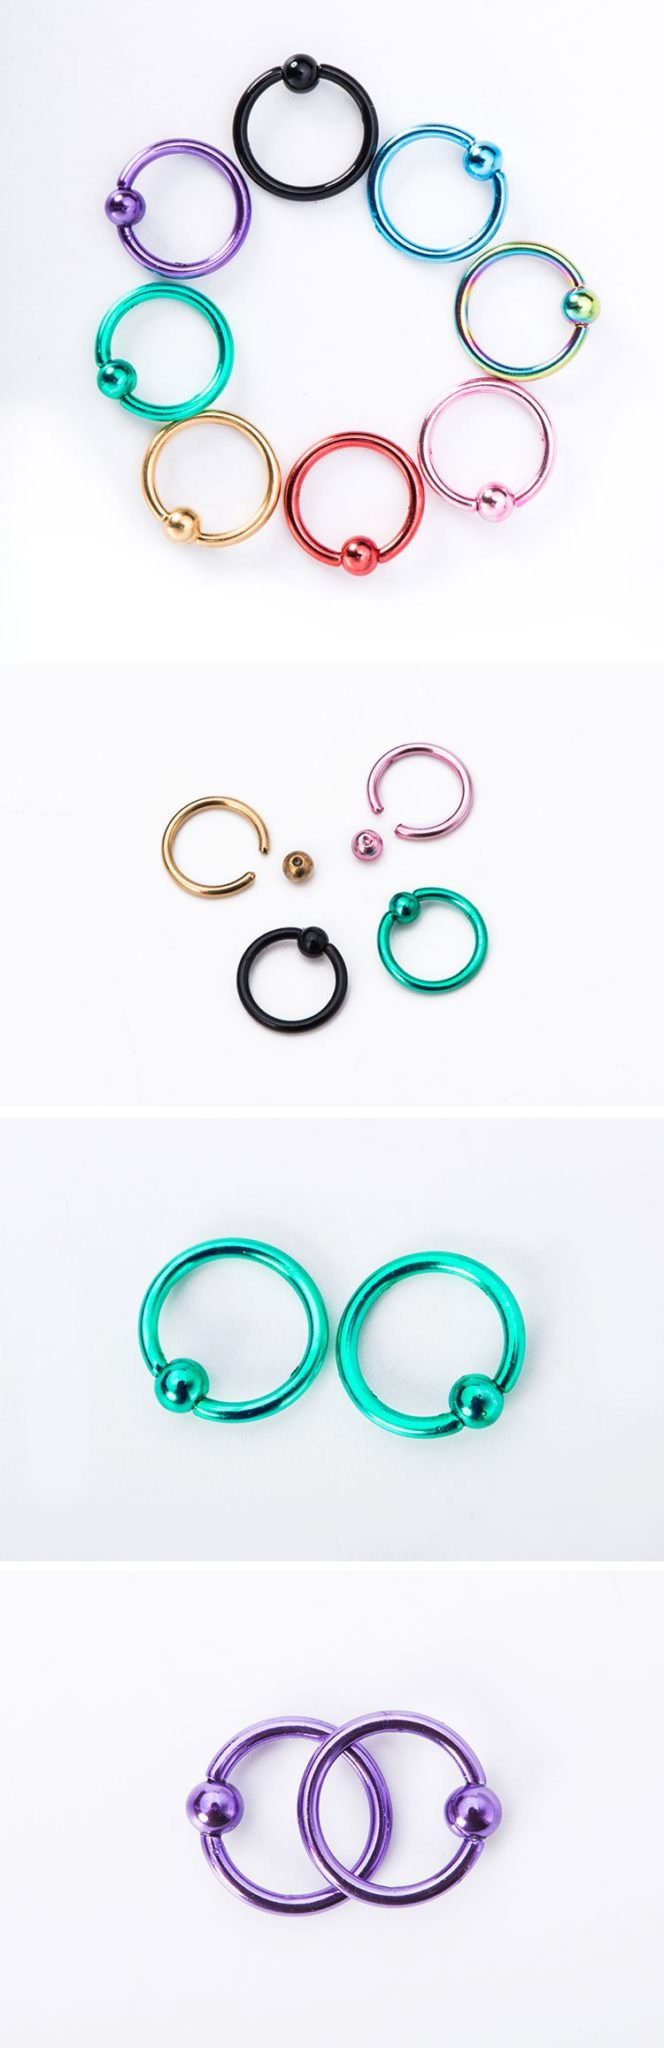 11648-a353be423831290ebbb6014b65adc563 Trendy Stainless Steel Captive Bead Ring Jewelry In Various Colors